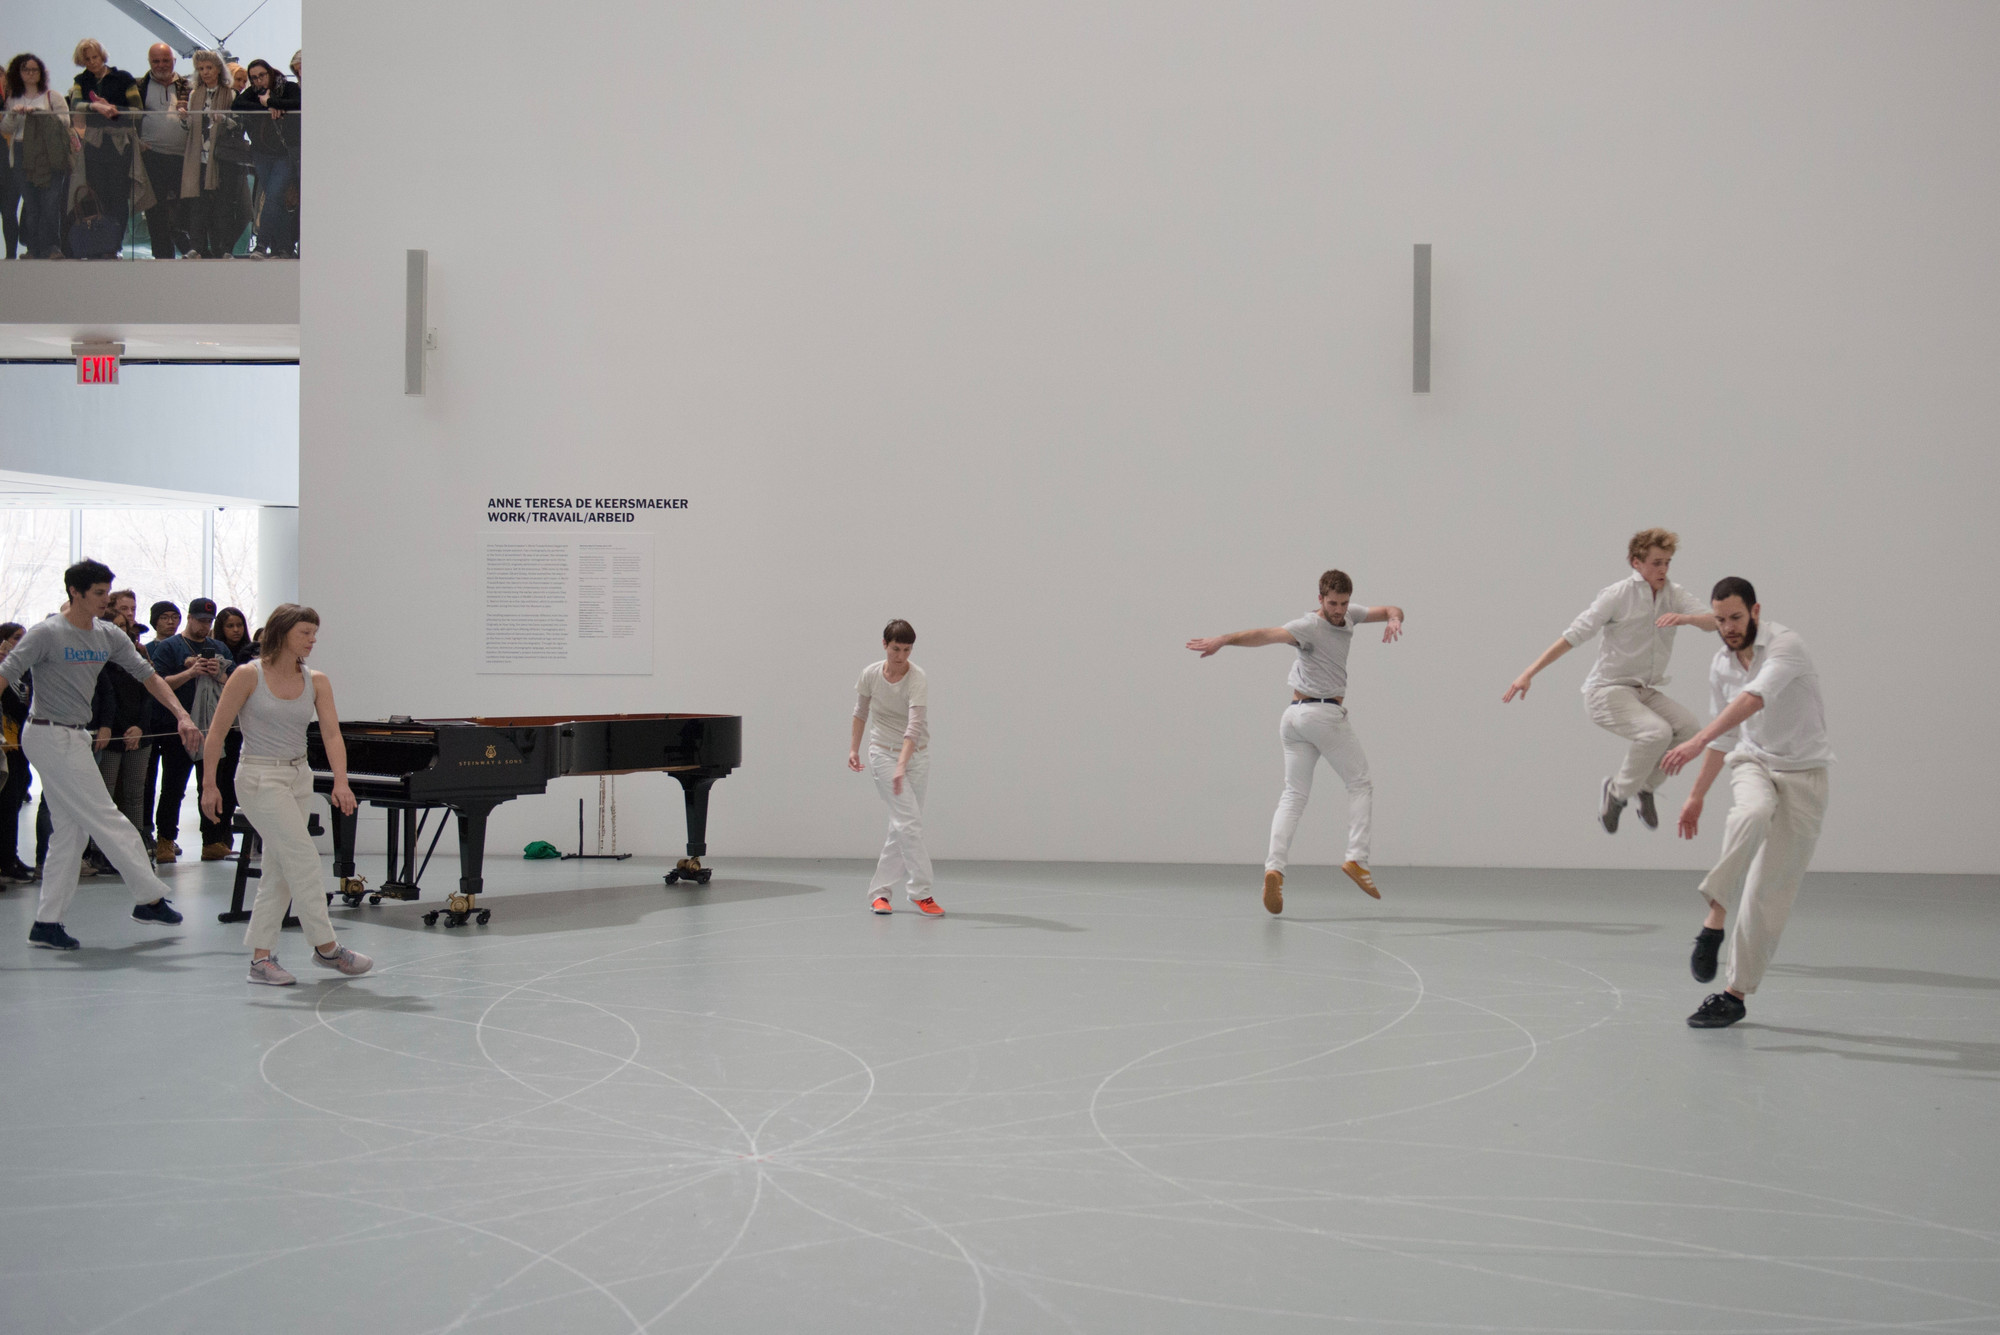 Anne Teresa De Keersmaeker. Work/Travail/Arbeid. 2015. Installation view, The Museum of Modern Art, March 29, 2017. © 2017 Anne Teresa De Keersmaeker. Photo: Anne Van Aerschot